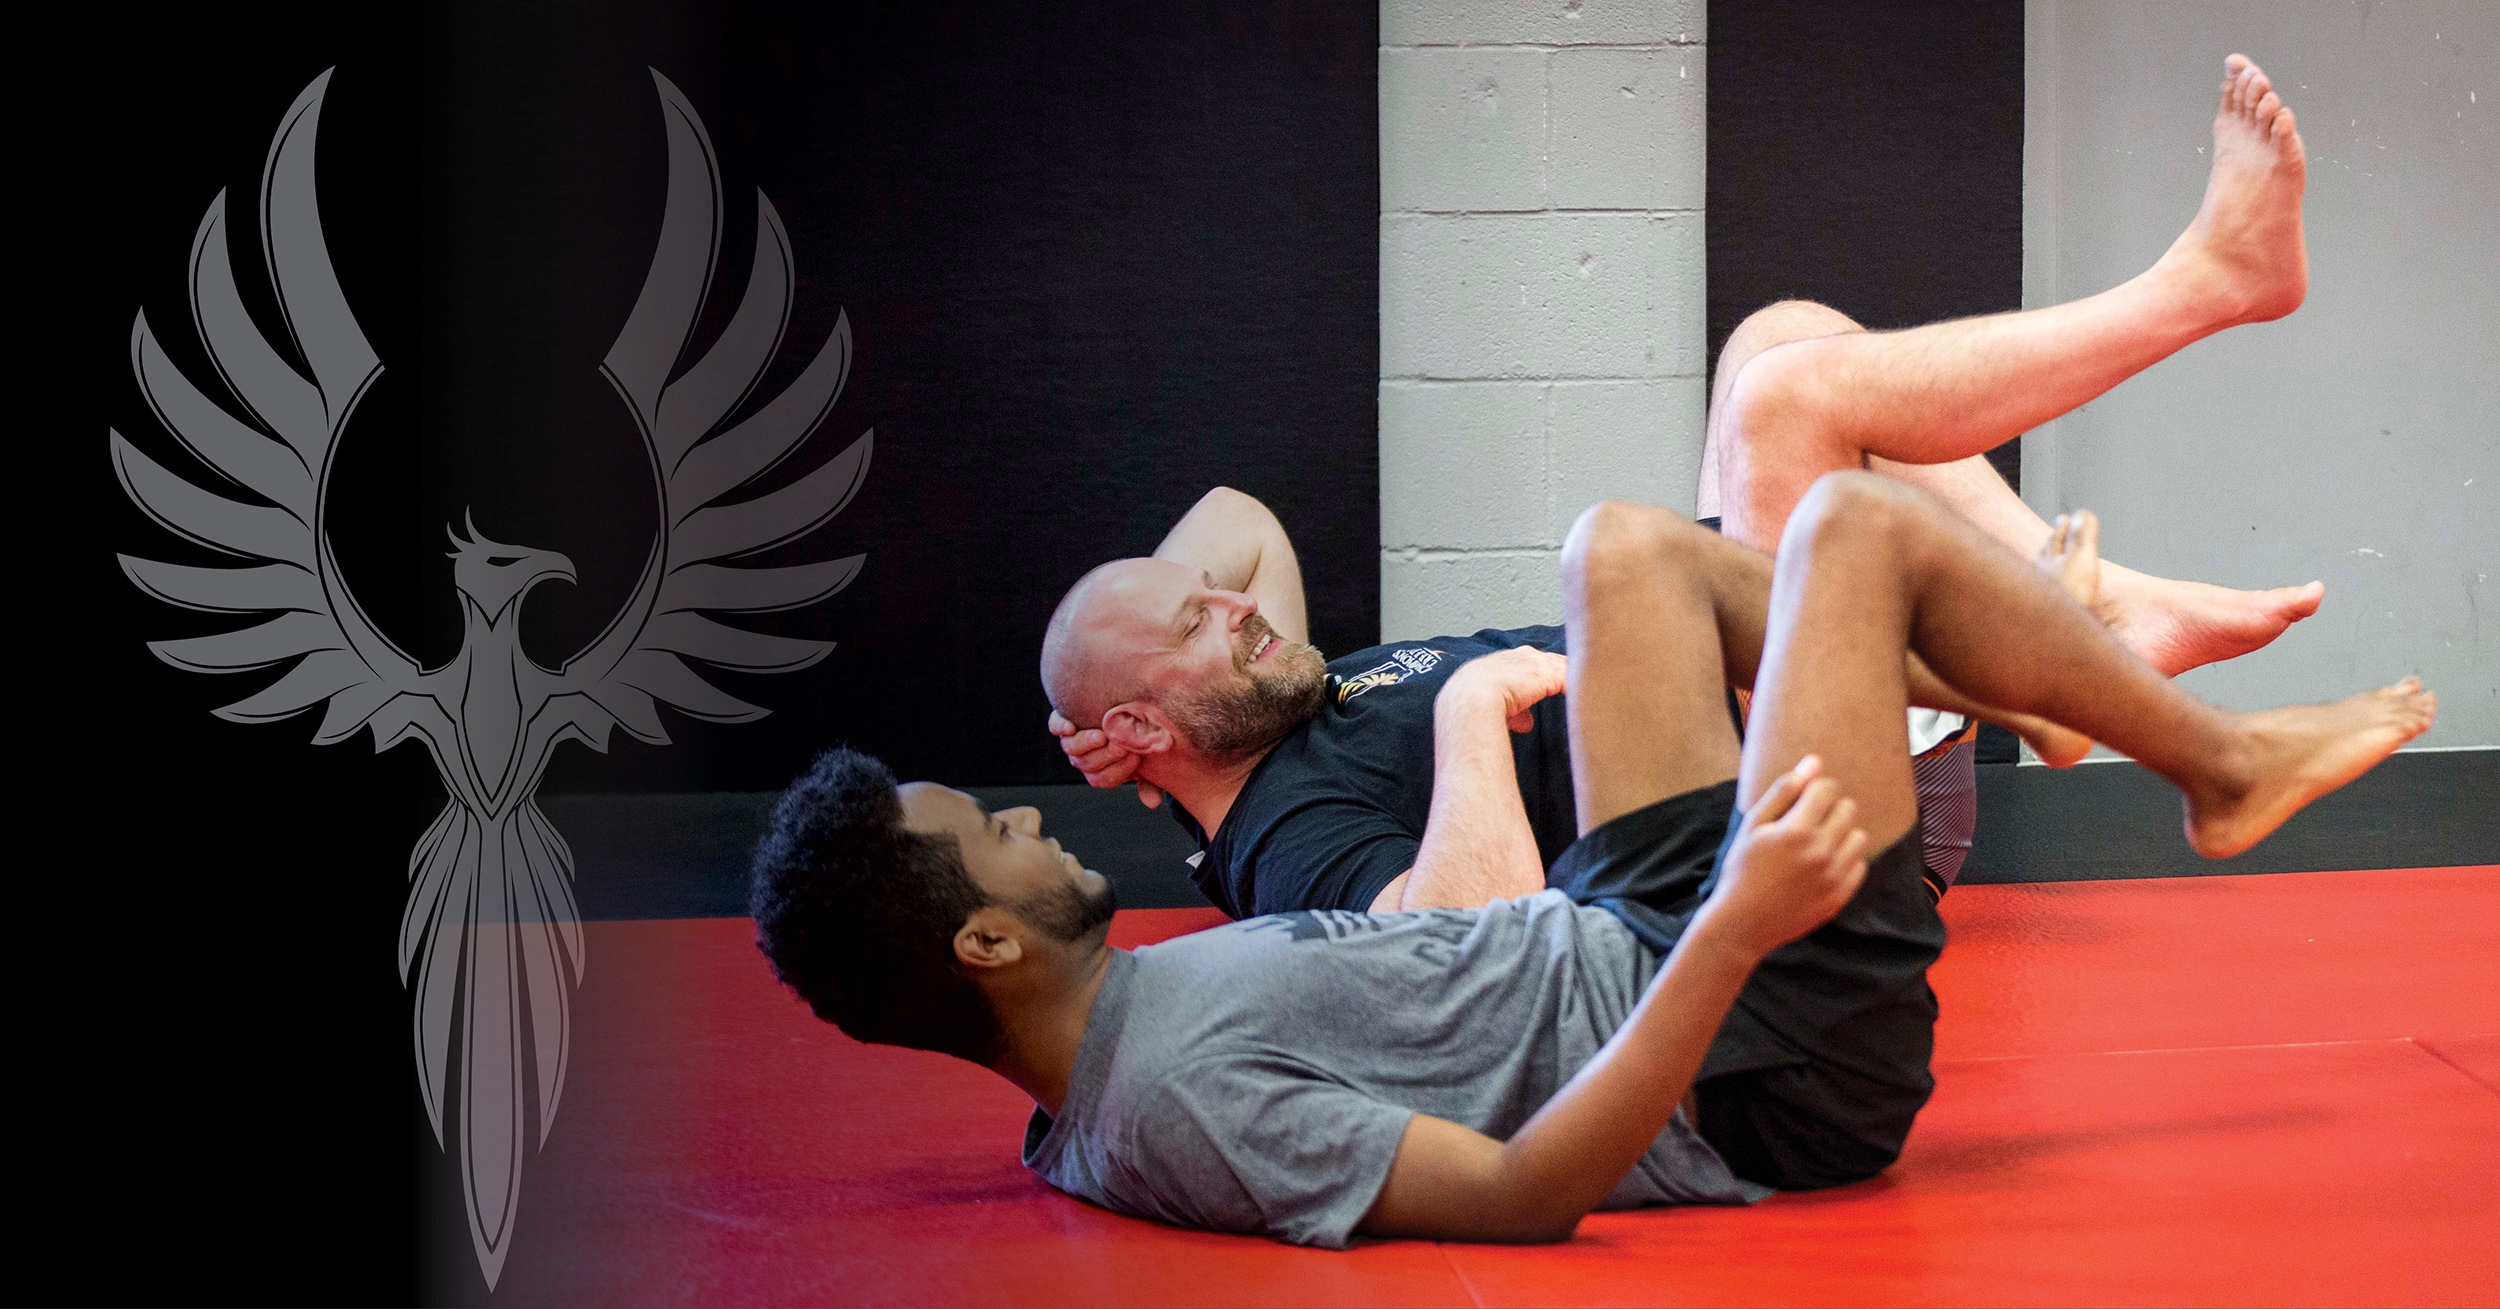 10 Reasons Why Brazilian Jiu-Jitsu Is the Martial Art for You